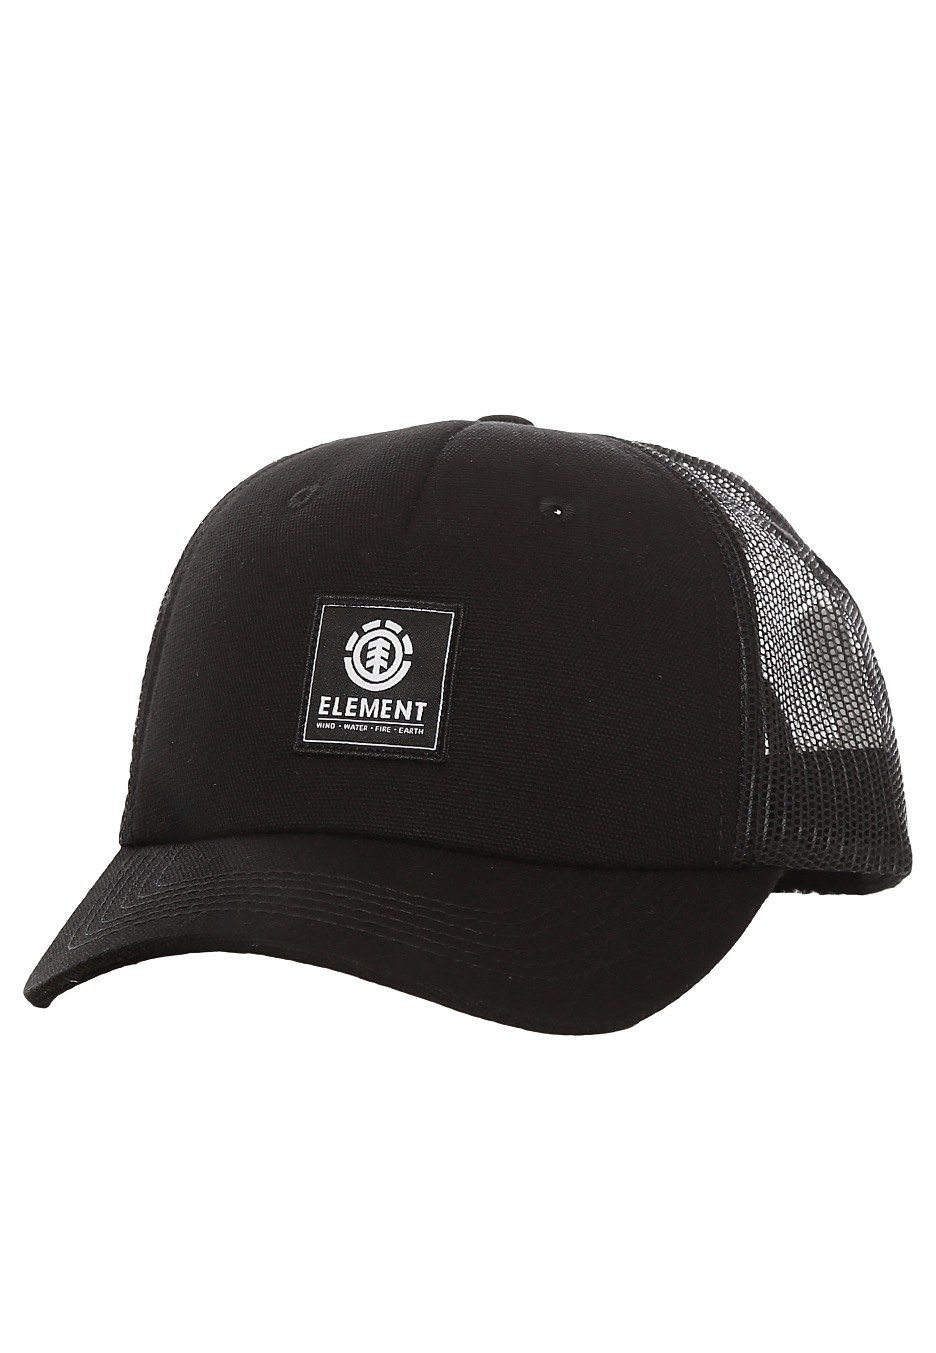 Find great deals on eBay for All Blacks Cap in Men's Hats. Shop with confidence.